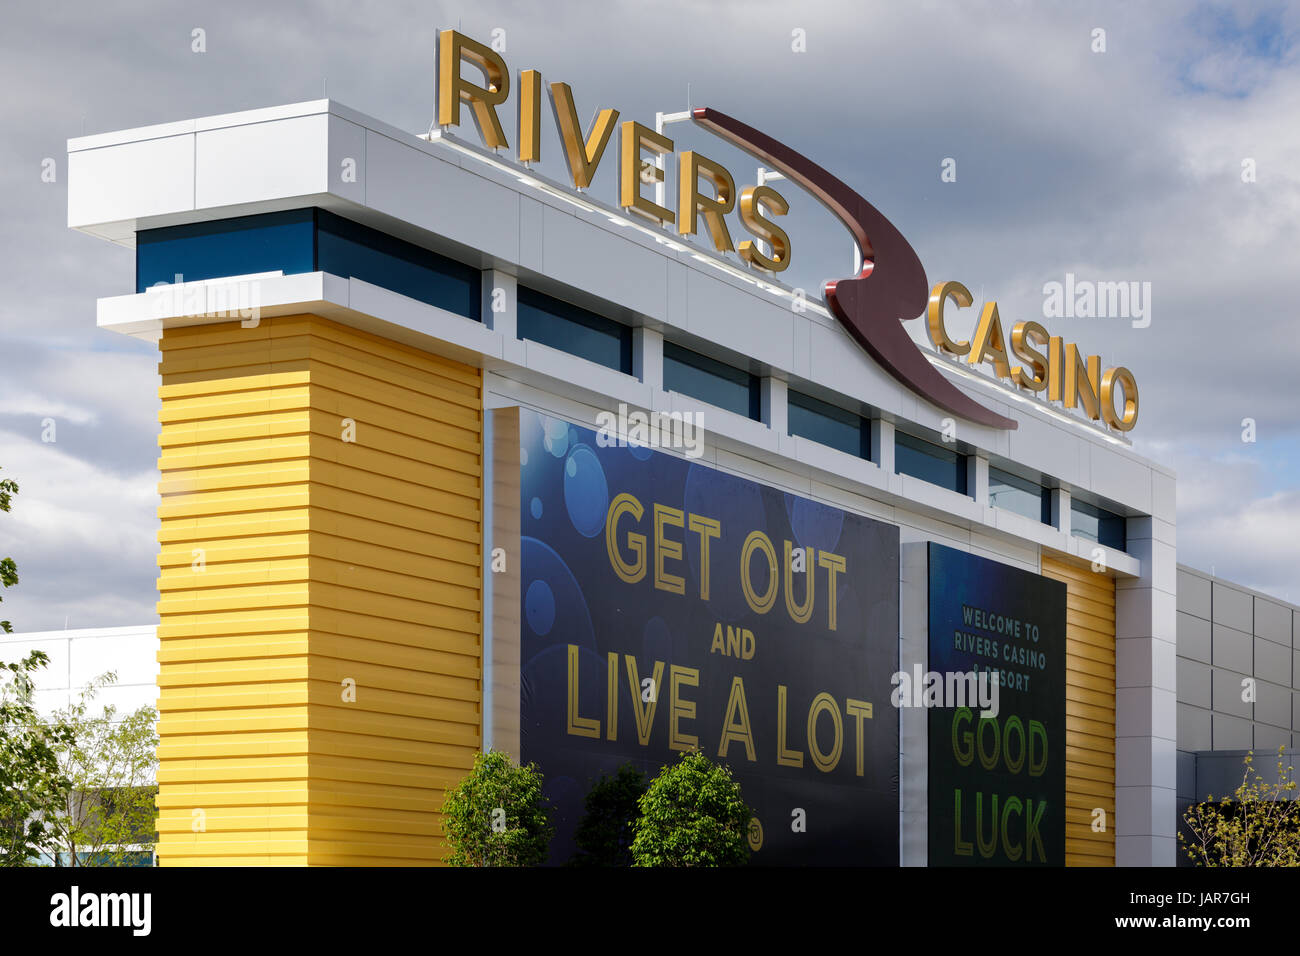 SCHENECTADY, NEW YORK, JUNE 3, 2017: Rivers Casino has recently opened here. The state hopes it will inject some - Stock Image